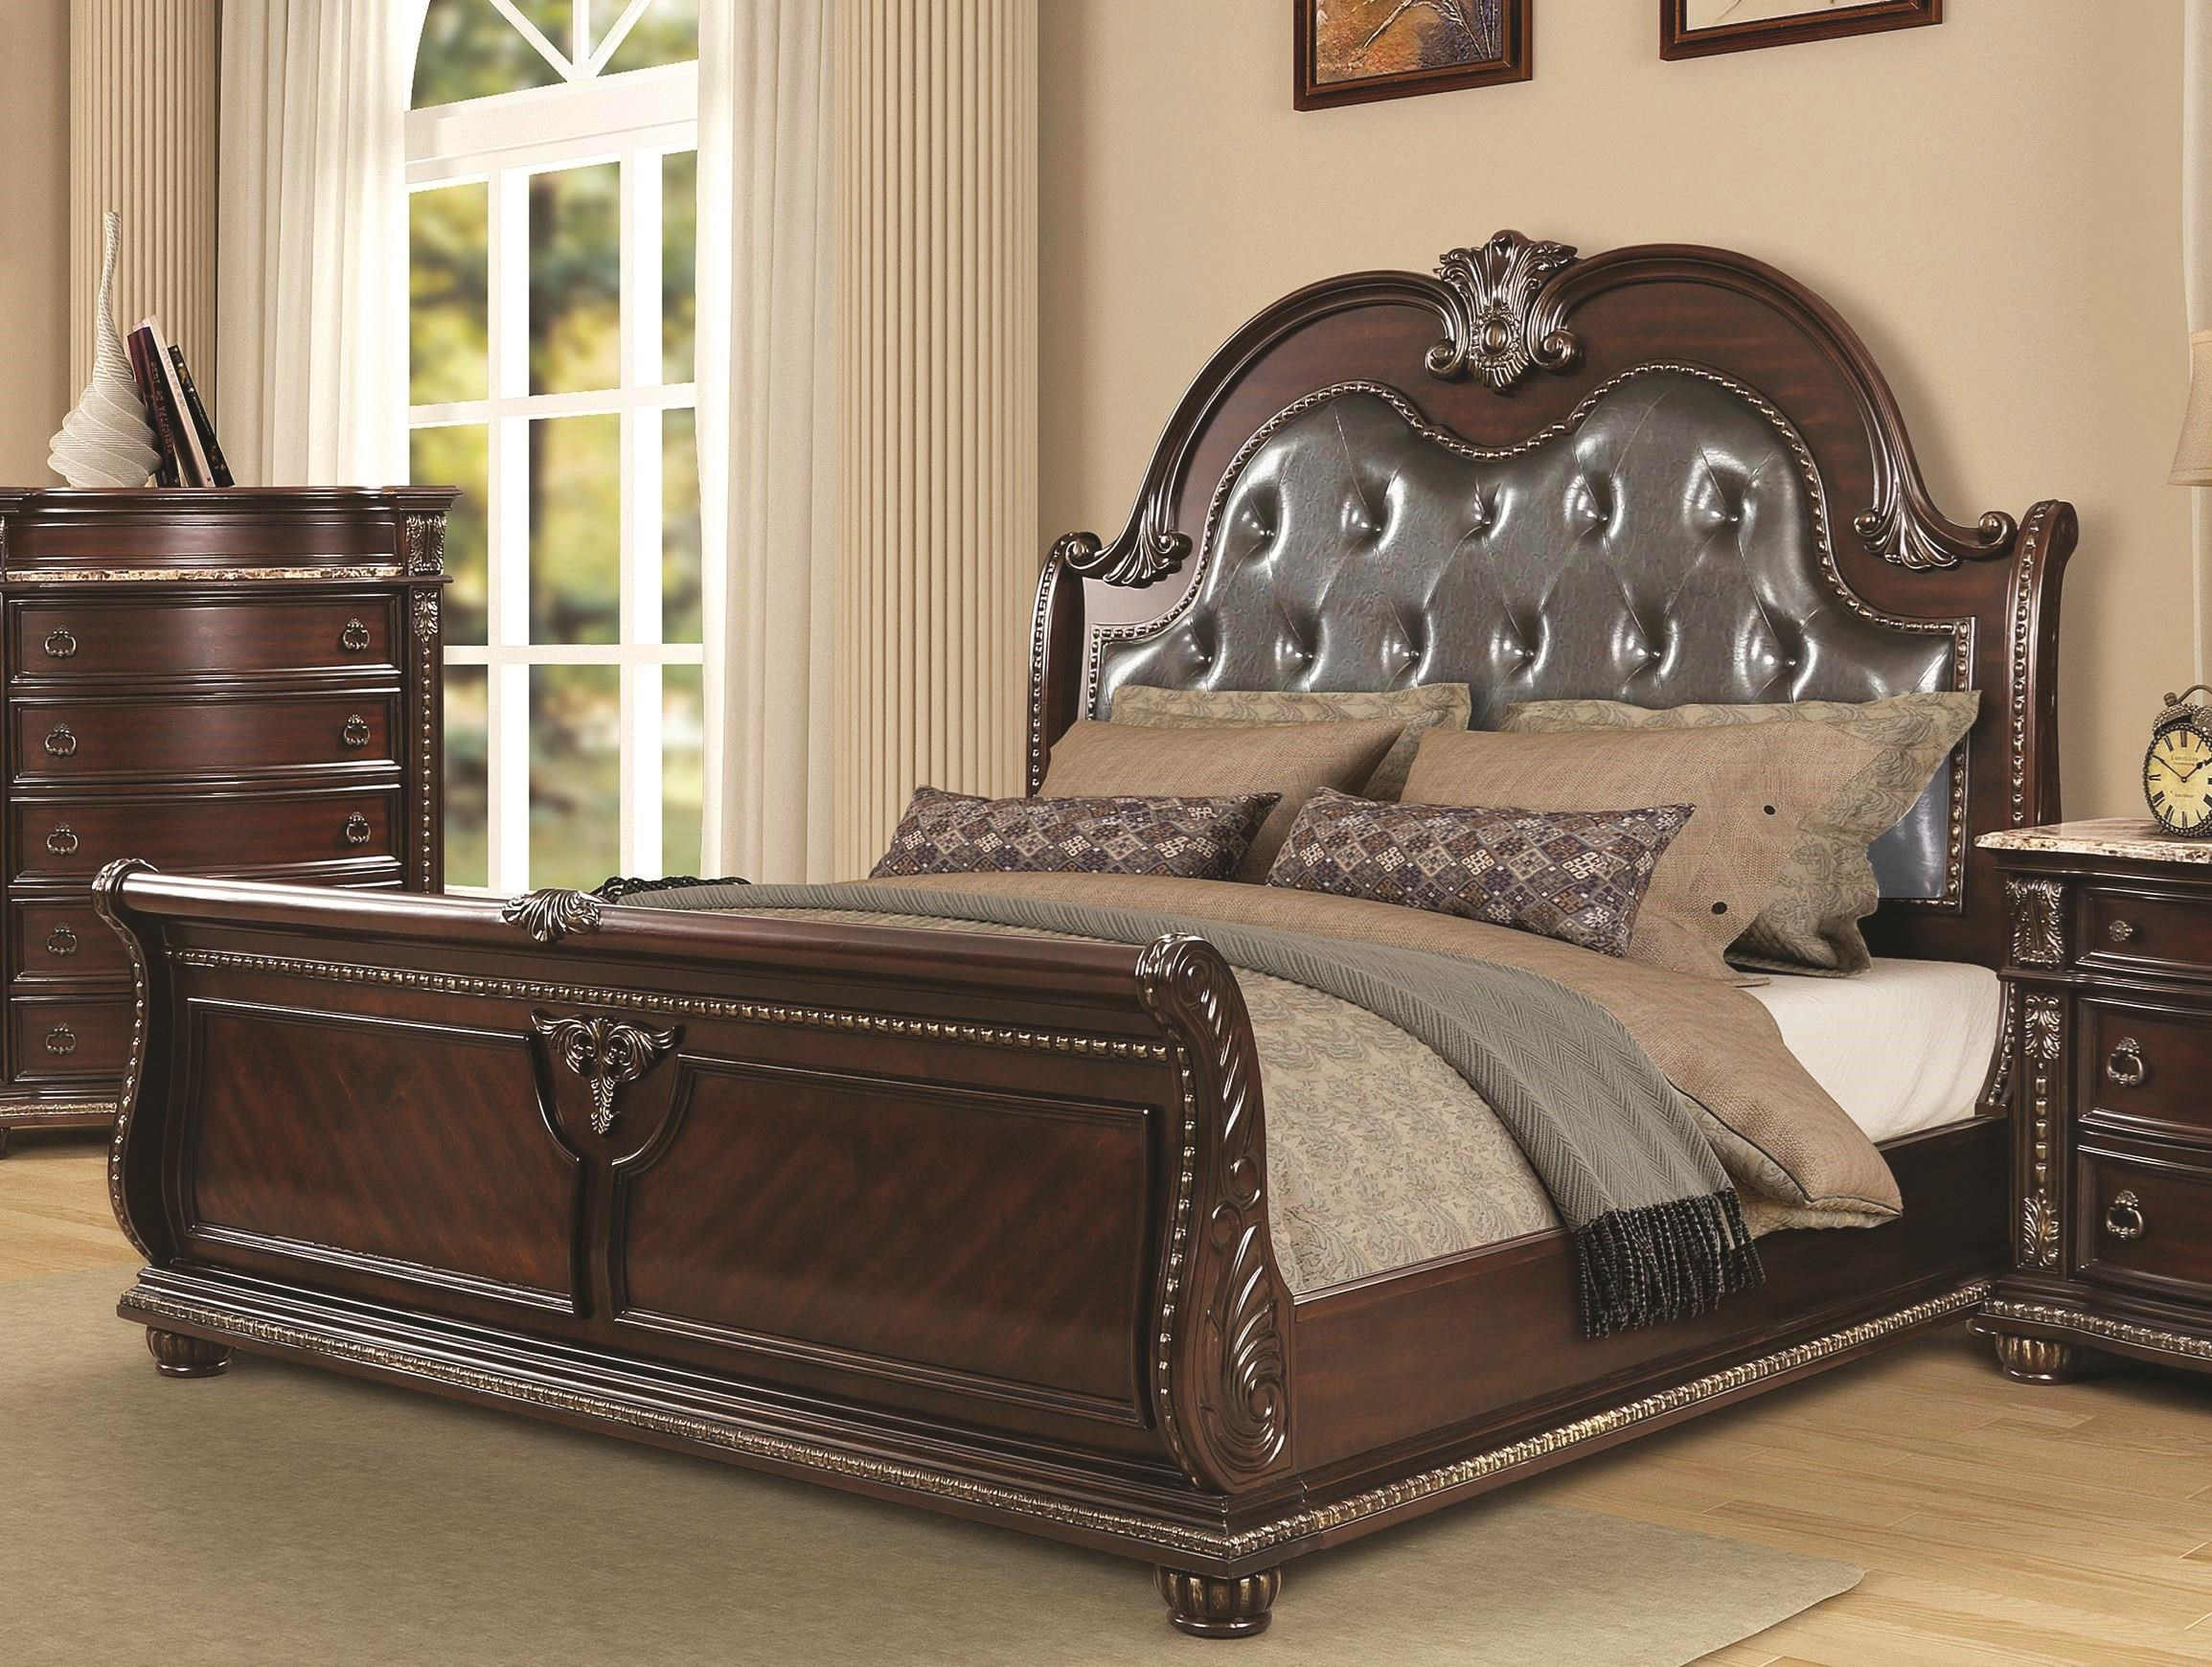 3600 BEAU King Sleigh Bed by Oasis Home & Decor at Furniture Fair - North Carolina